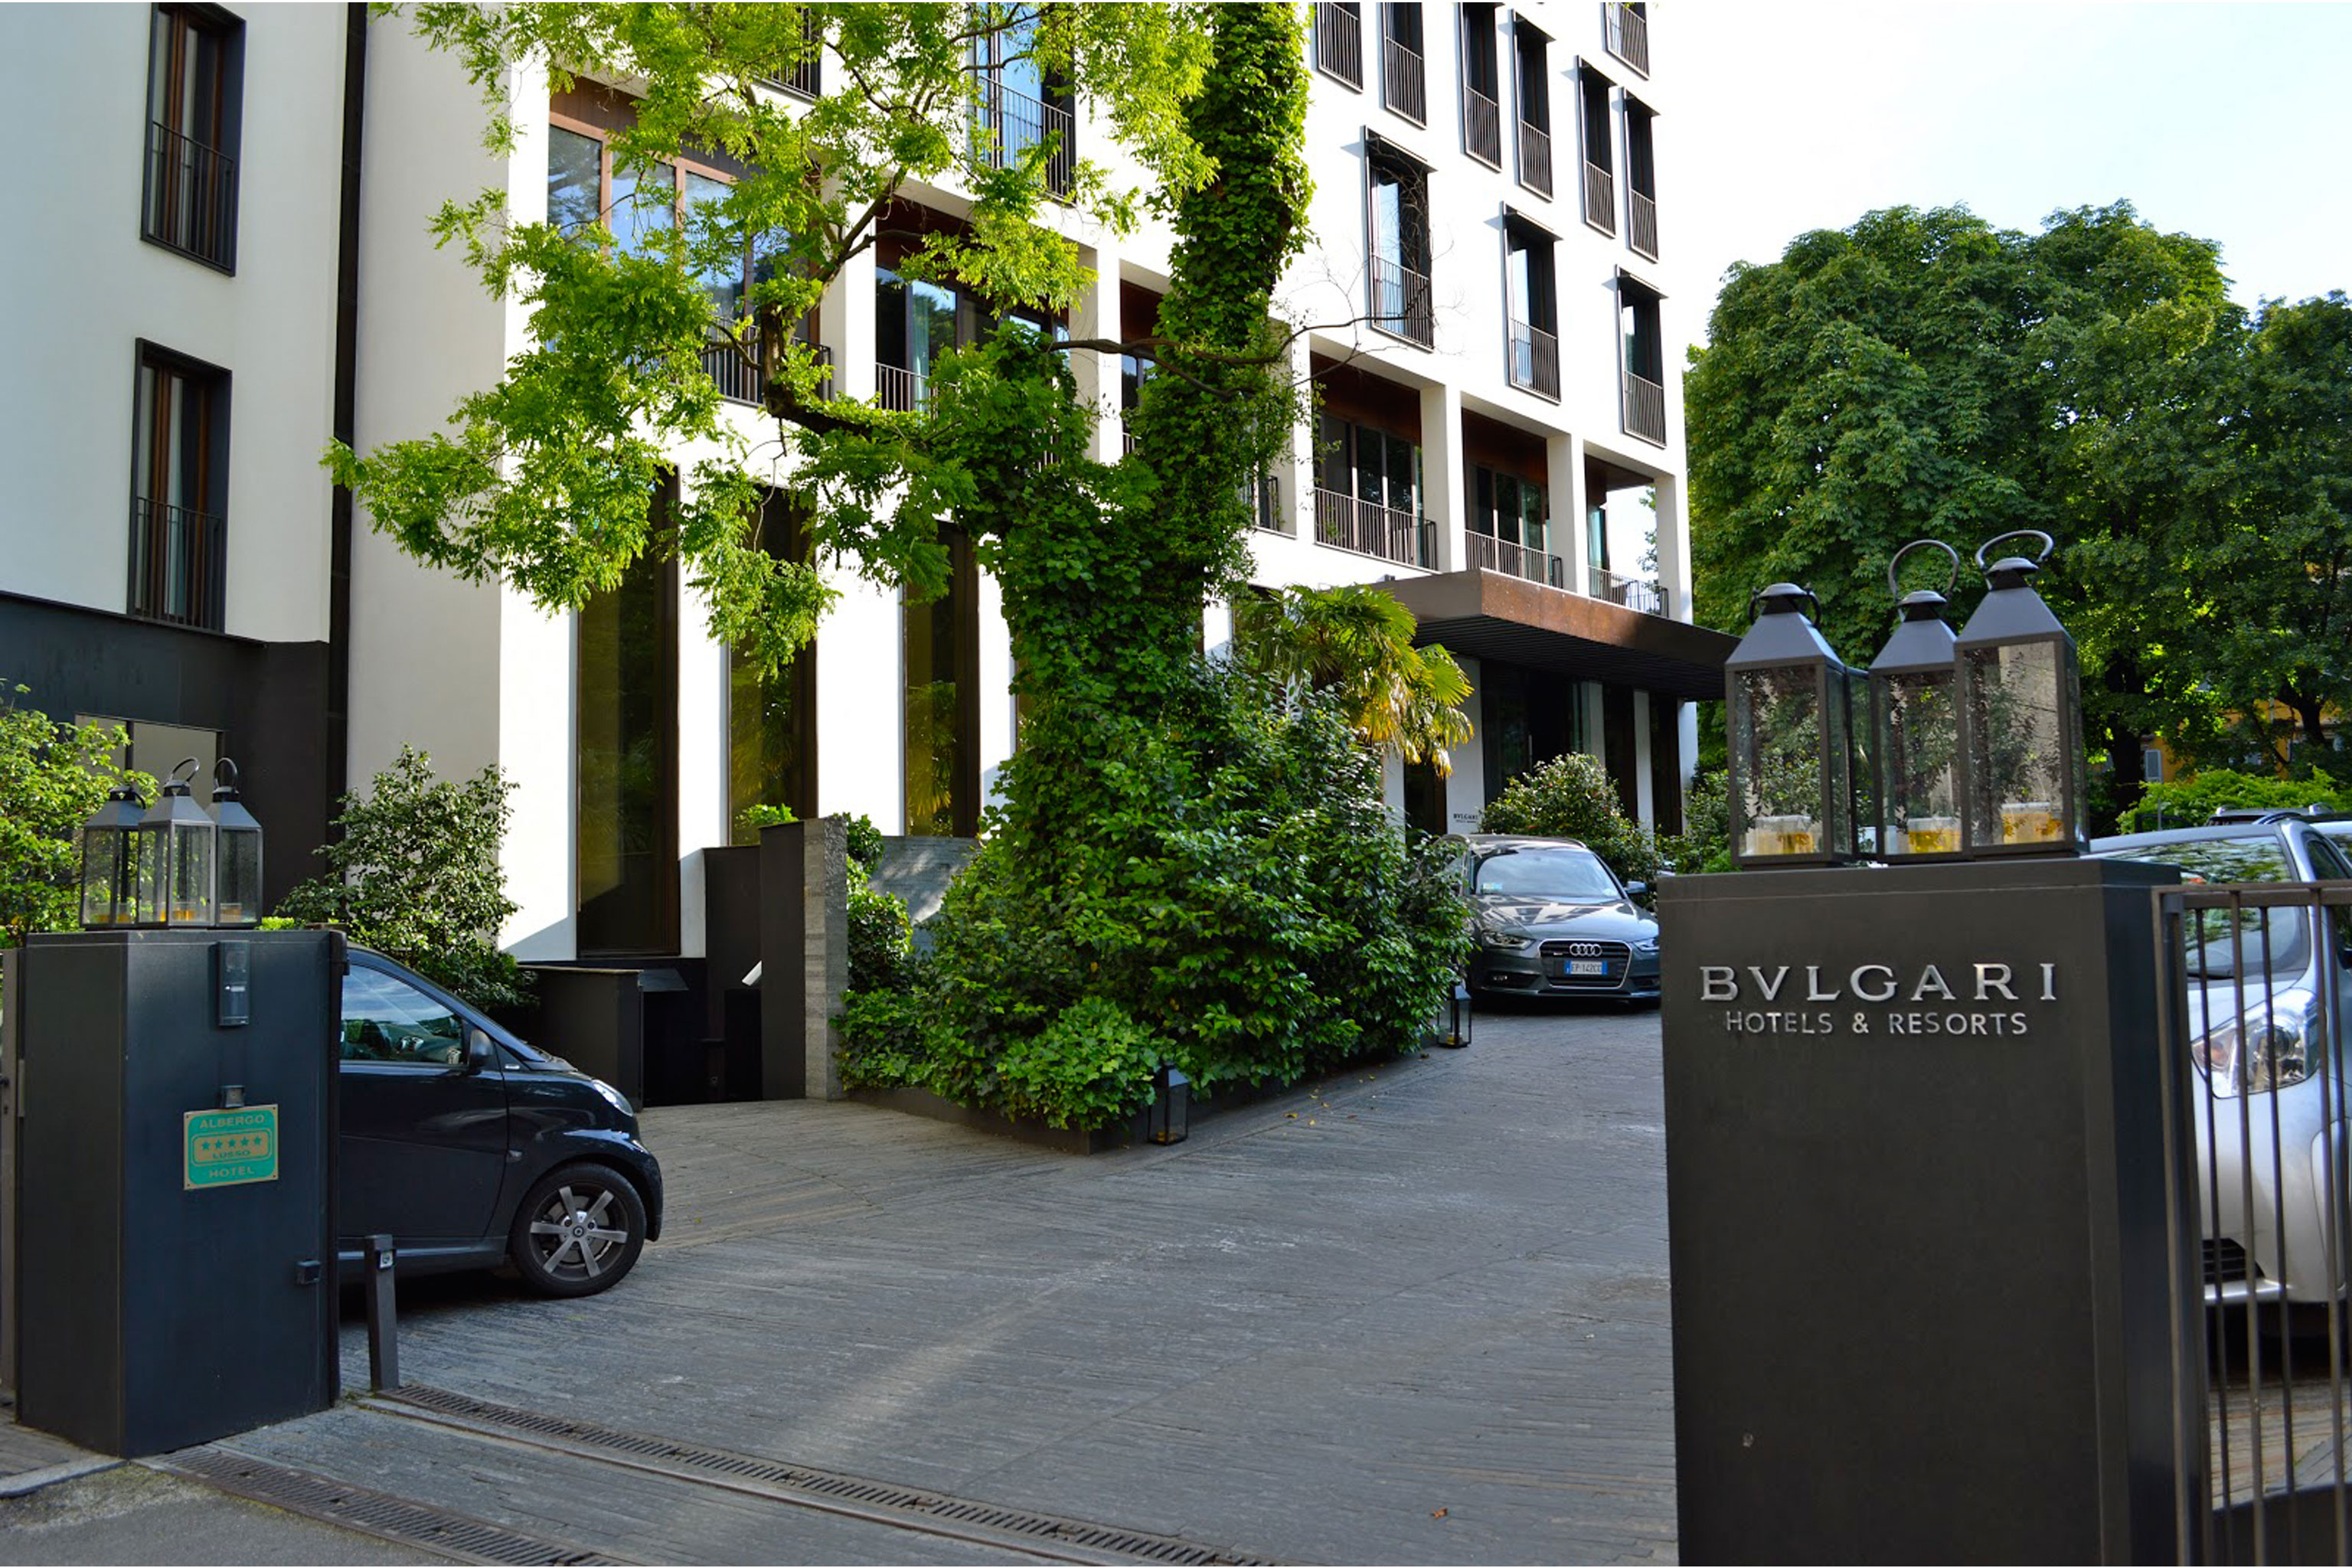 London  Star Hotels With Spa